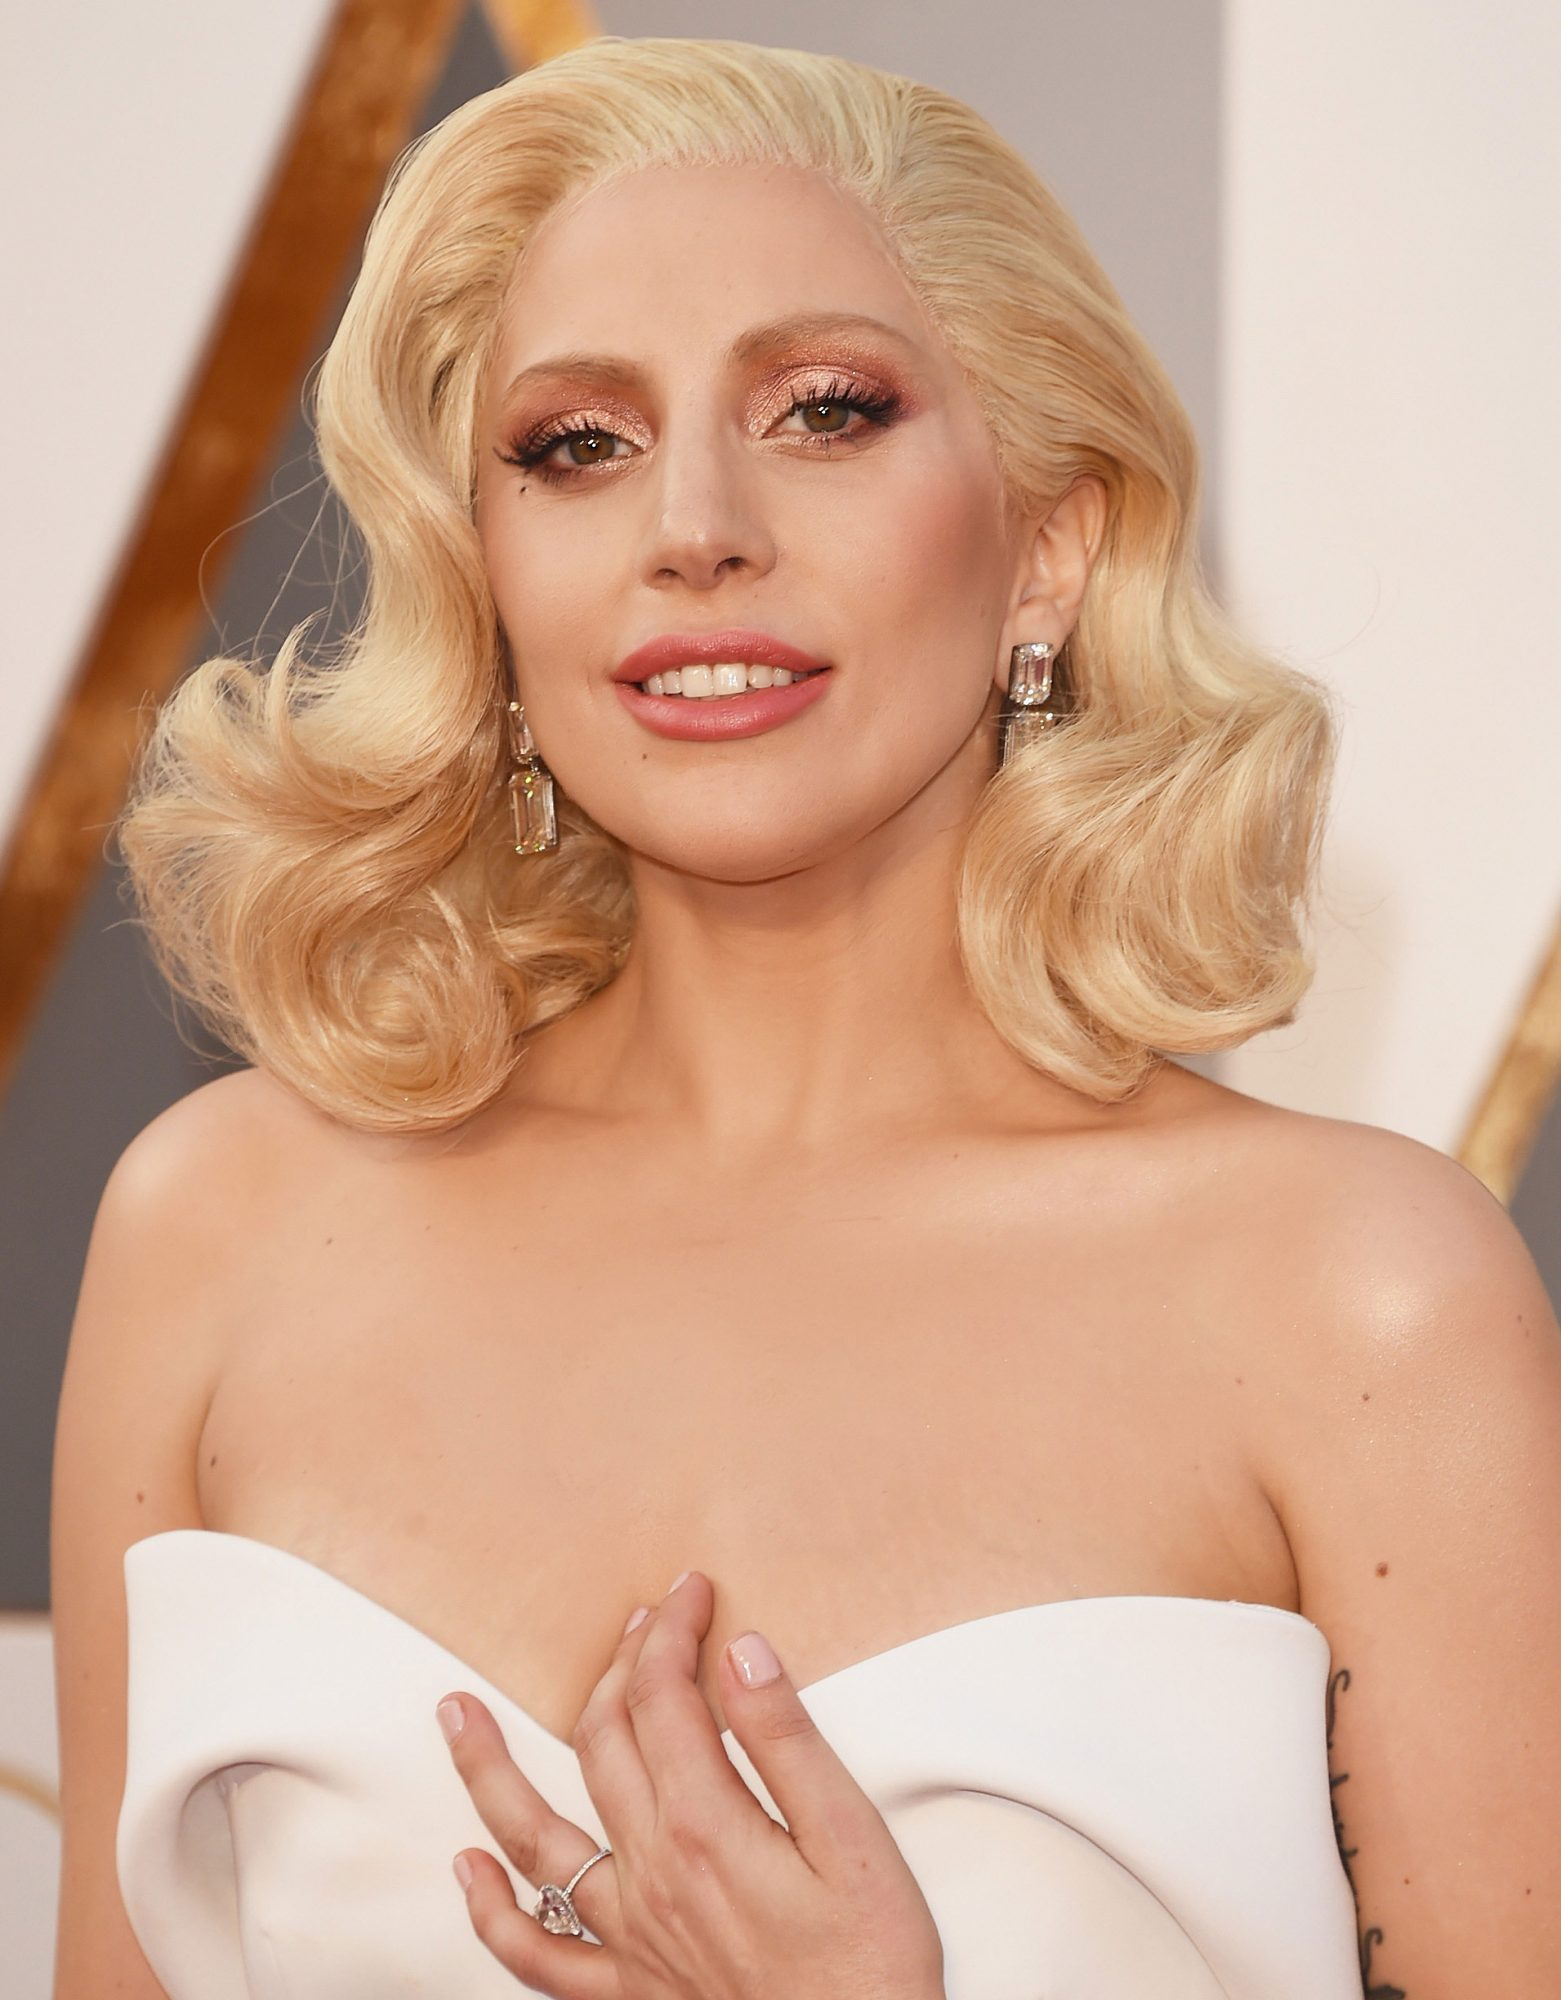 Lady Gaga Reveals She Suffers from Fibromyalgia as She Opens Up About Pain in New Documentary